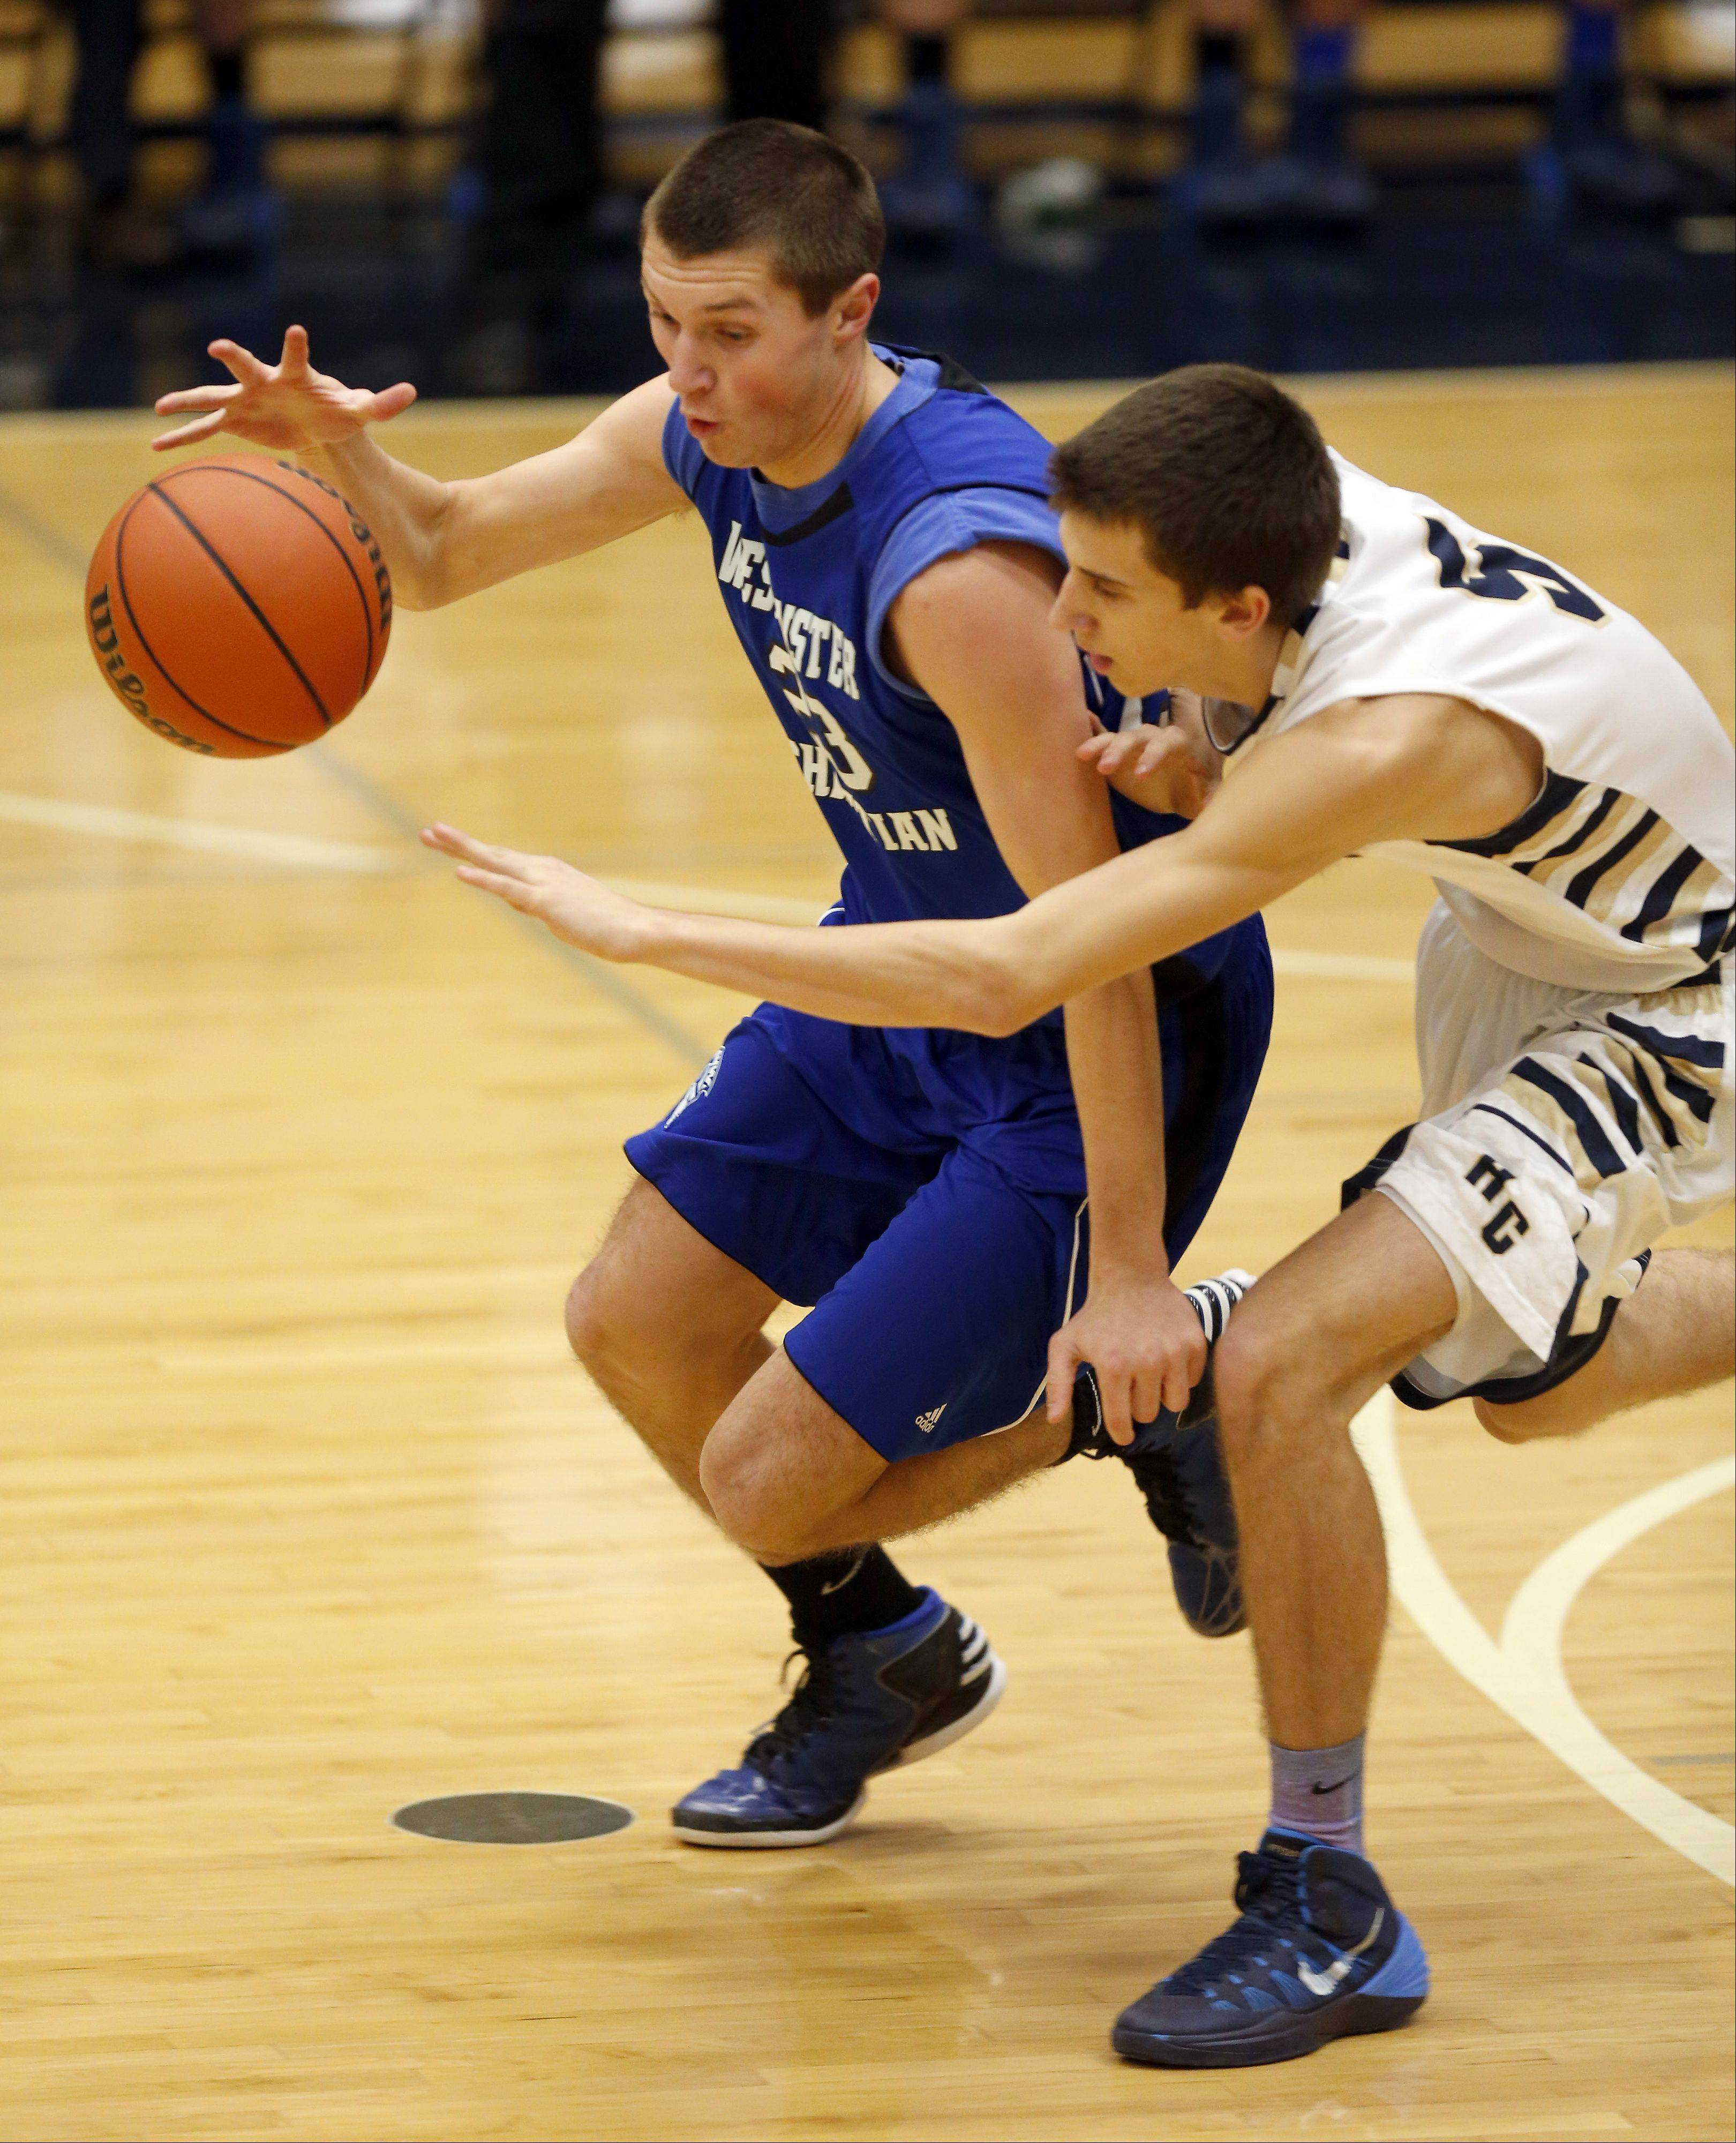 Westminster Christian�s Robert Kleczynski works past Harvest Christian�s Brett Cramer Friday in Elgin.